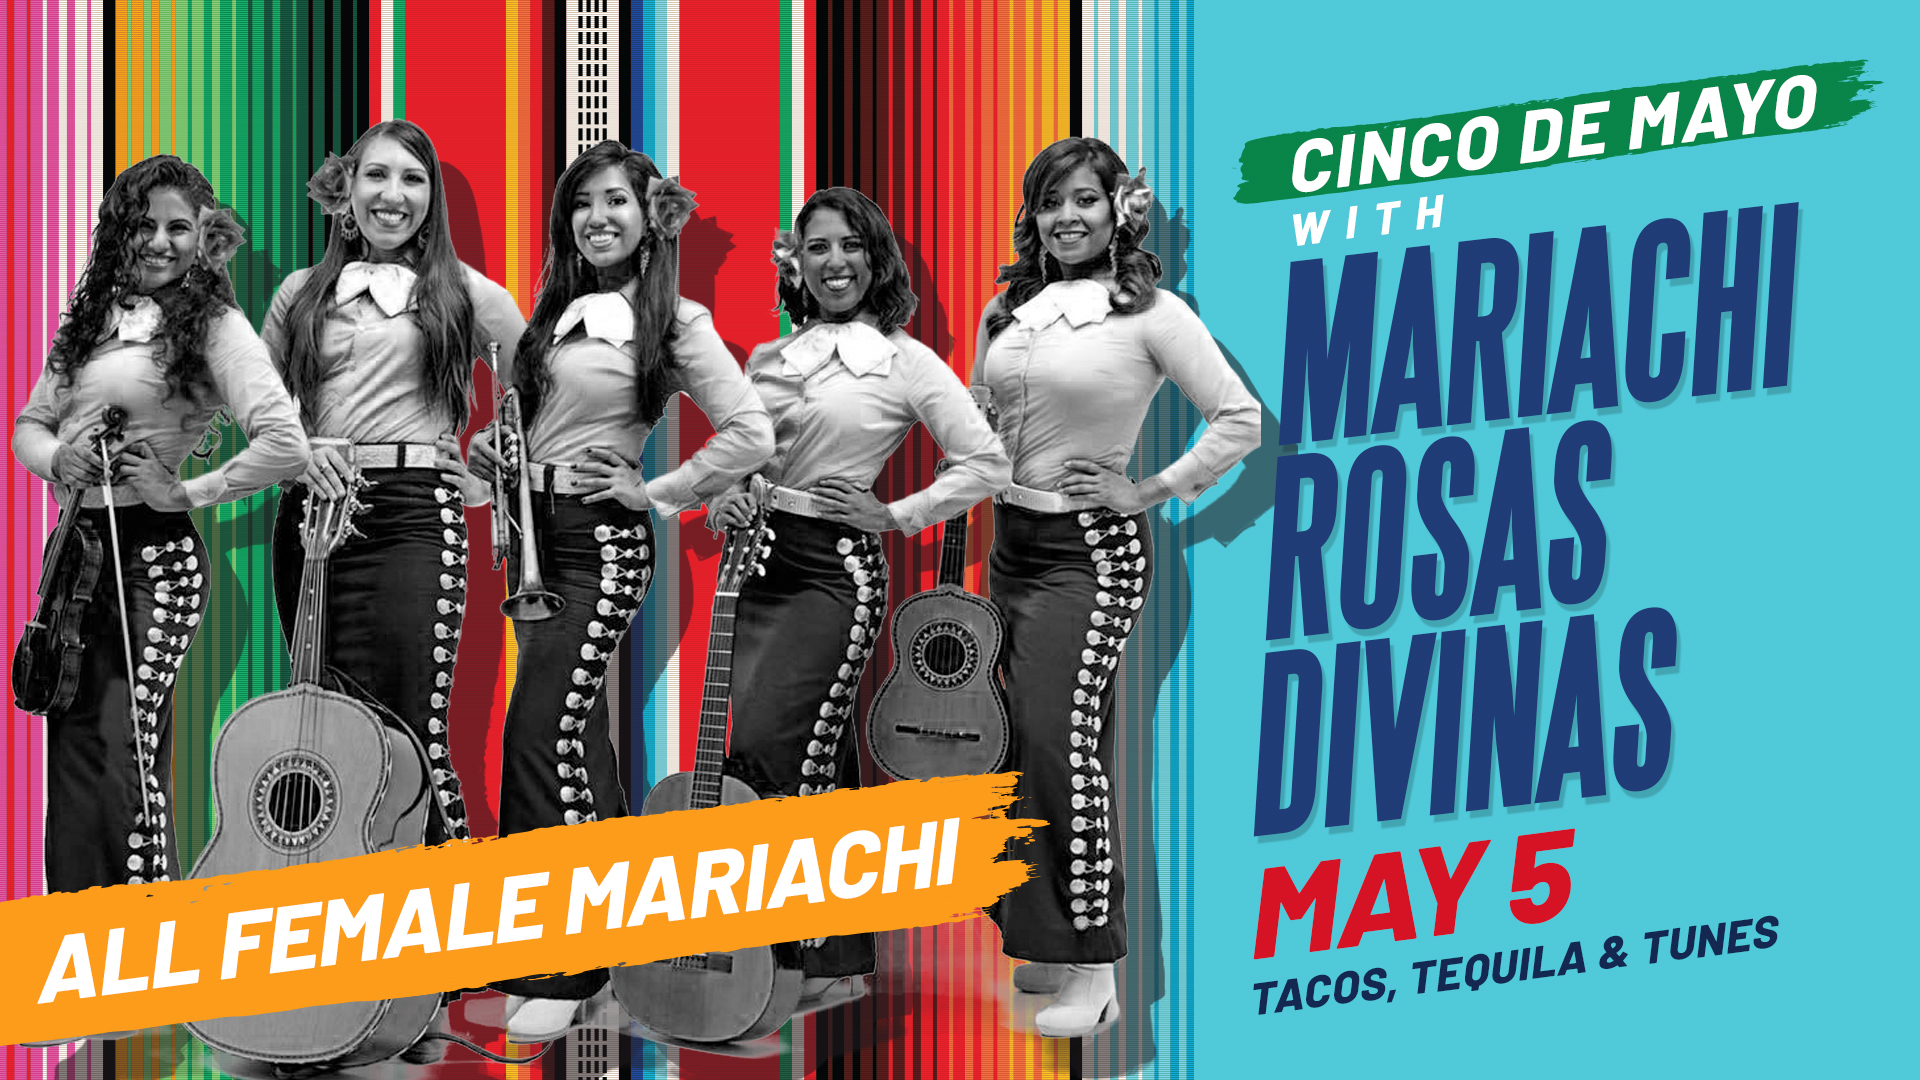 Promo image of Cinco de Mayo with Mariachi Rosas Divinas